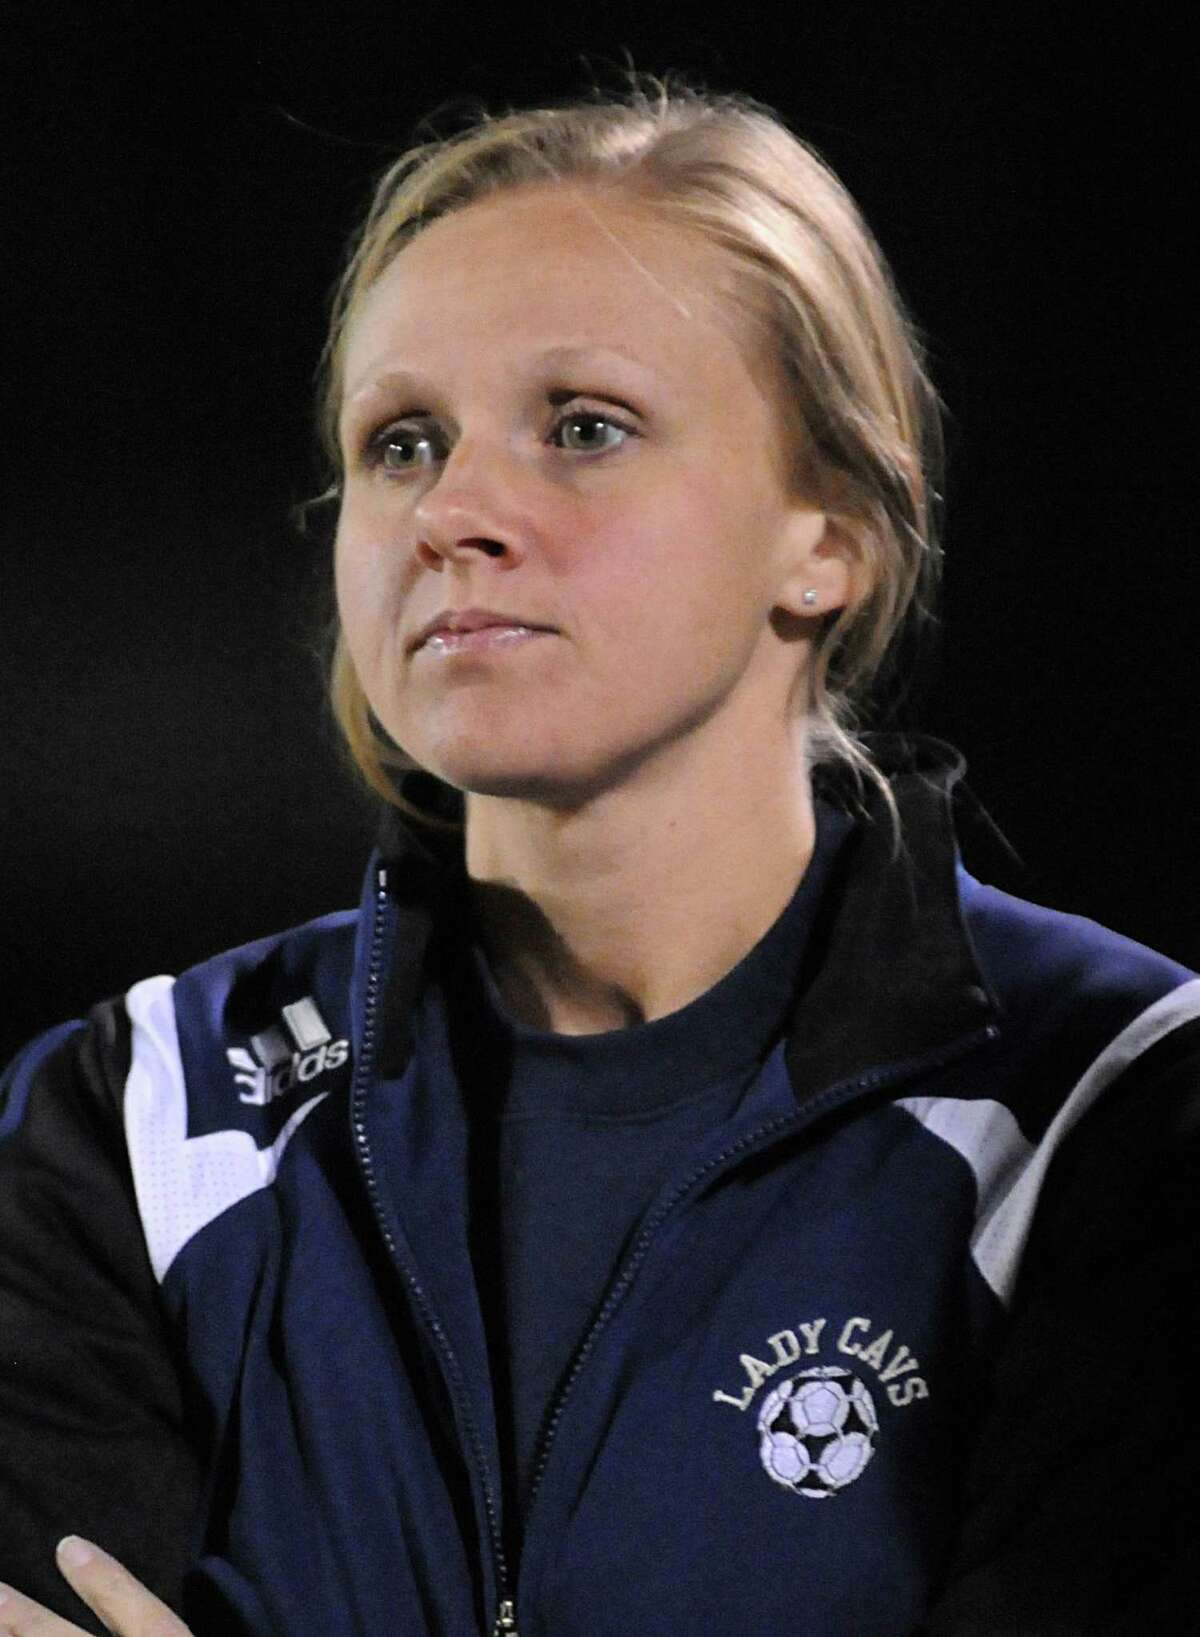 College Park girls soccer coach Meredith Cook during the Stratford at College Park girls soccer game. Photo by David Hopper